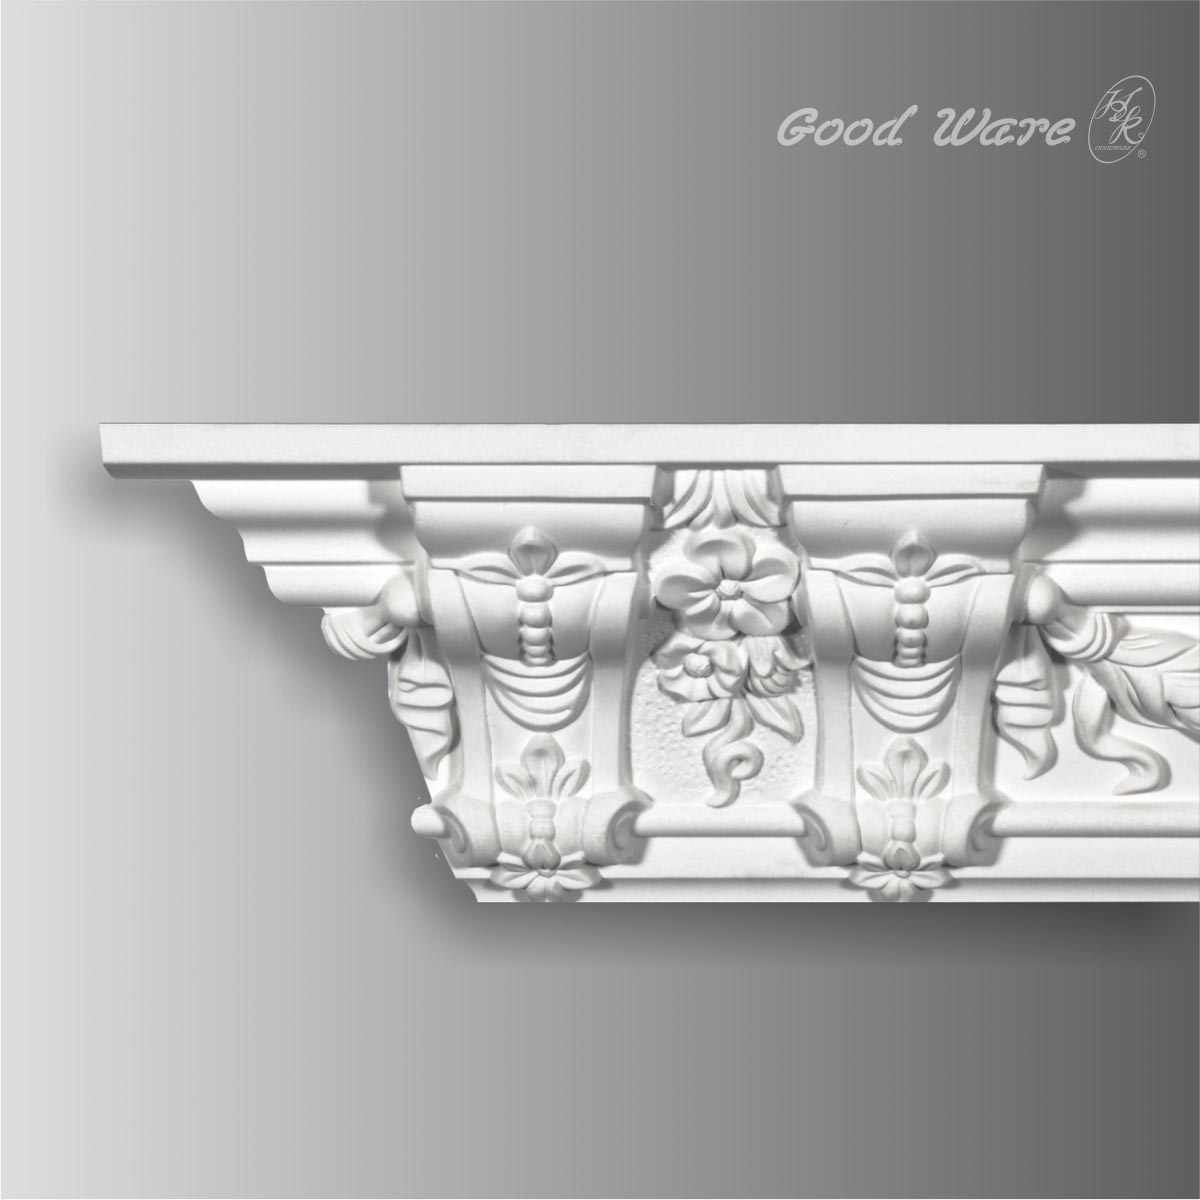 Polyurethane ornate trim molding for ceiling